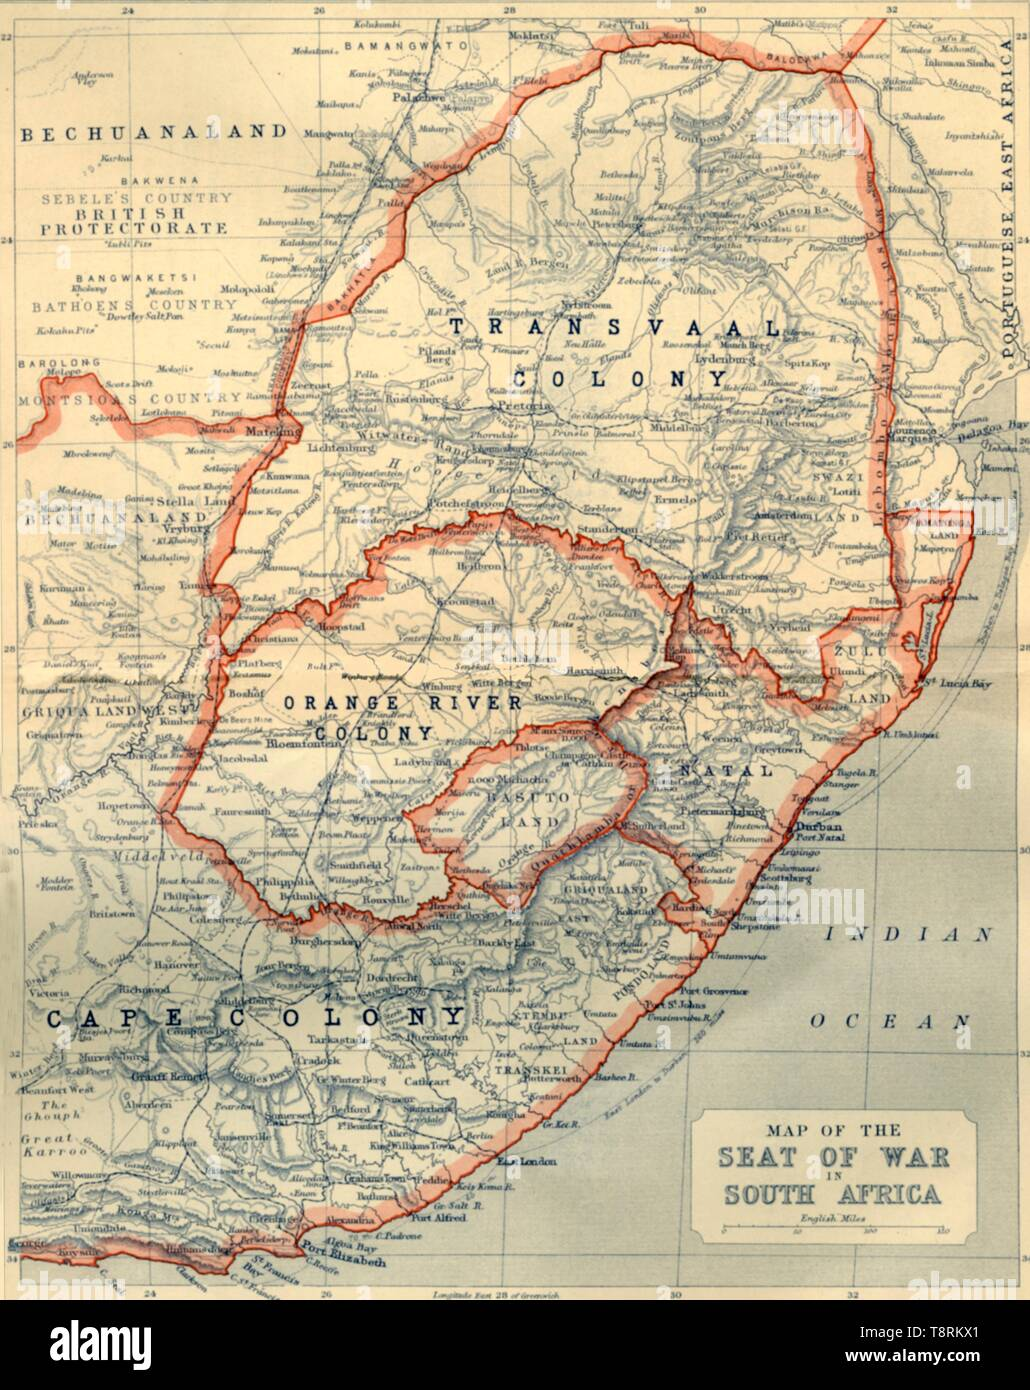 'Map of the Seat of War in South Africa', 1901. Creator: John Bartholomew. - Stock Image